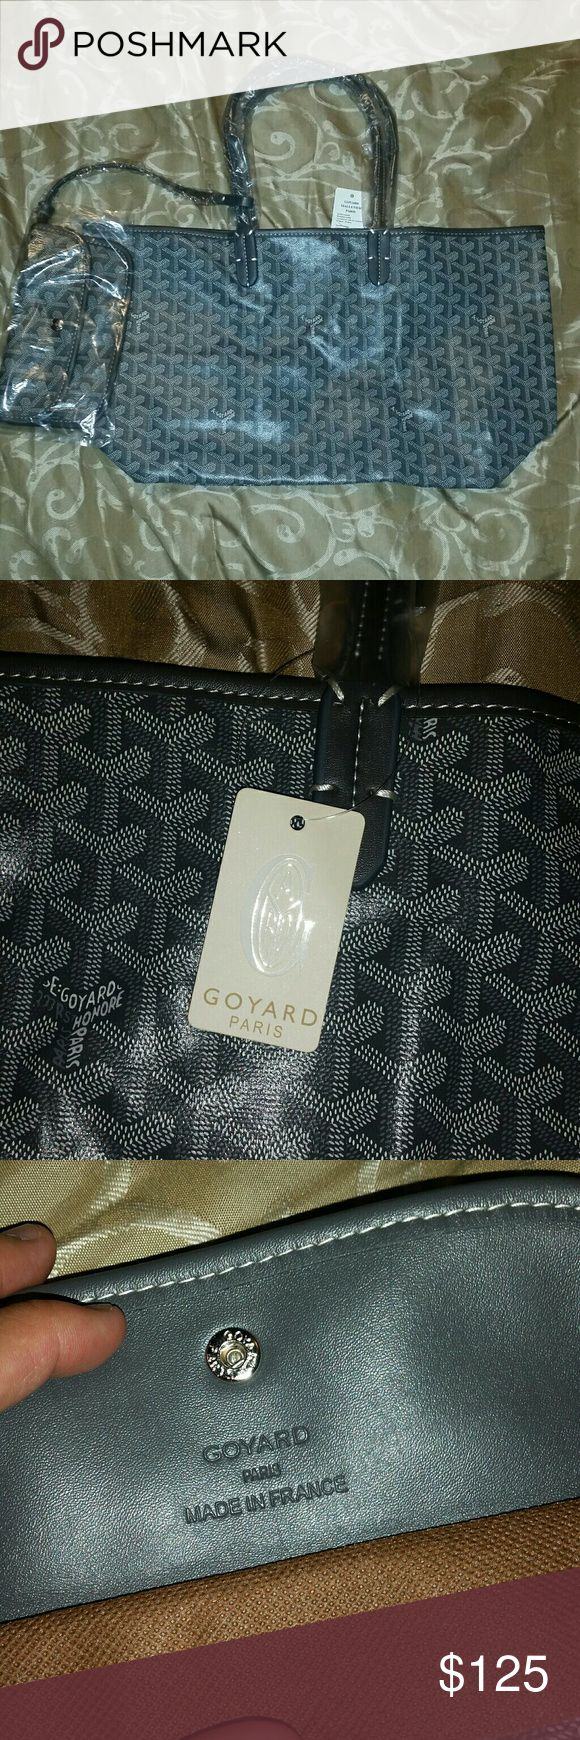 Tote bag and wallet Price says it all. Looks amazing and on point. Comes with a dustbag and tag. Goyard Bags Totes